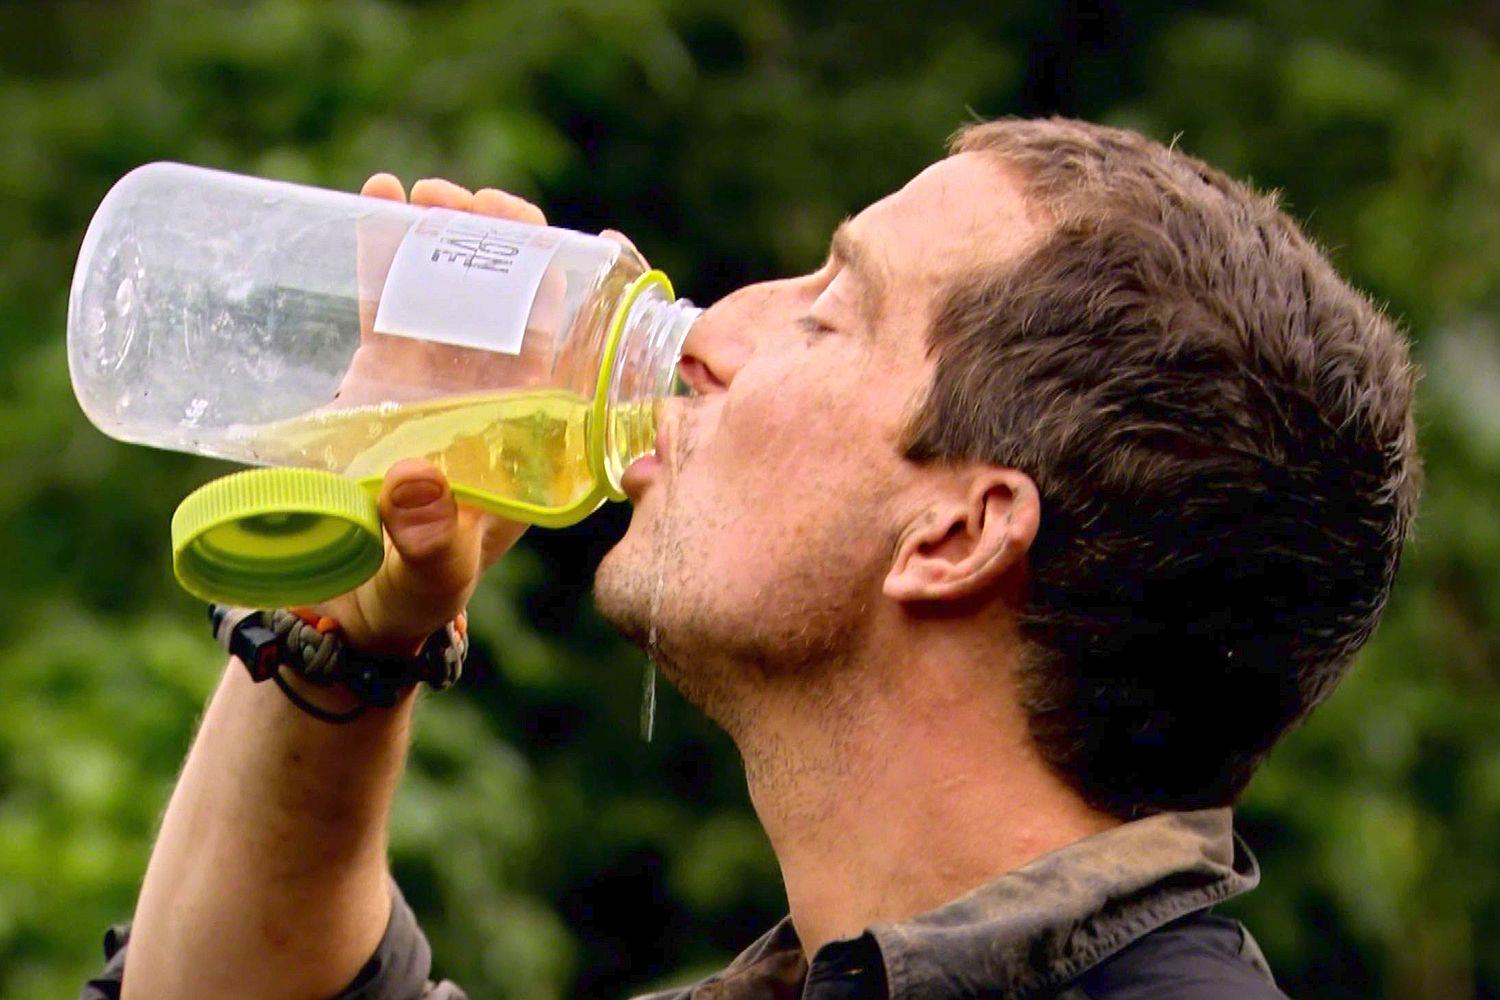 Bear Grylls Sent Out The Most Bear Grylls Birthday Party Invites Ever 01 1b00a6a6 654b 1 2503096a Planet Photos